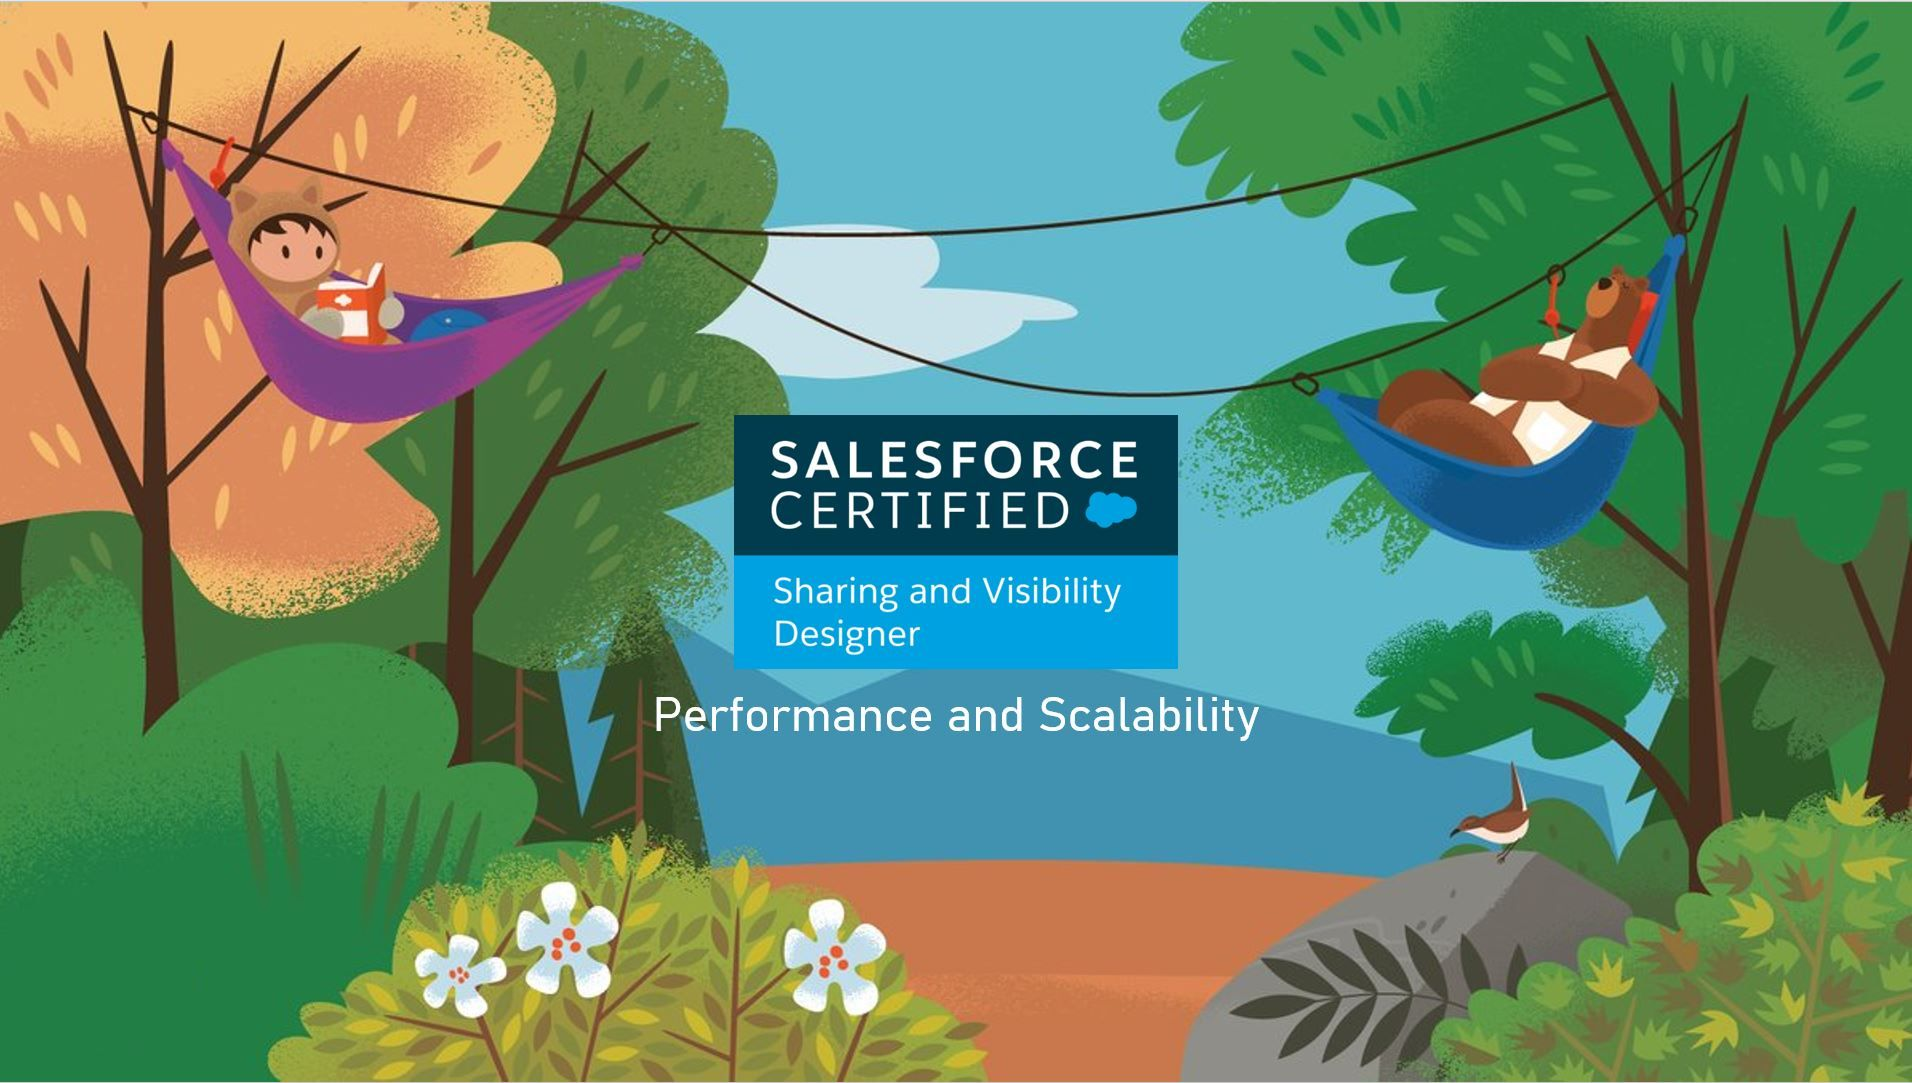 Salesforce Sharing and Visibility Designer Exam Preparation: Performance and Scalability